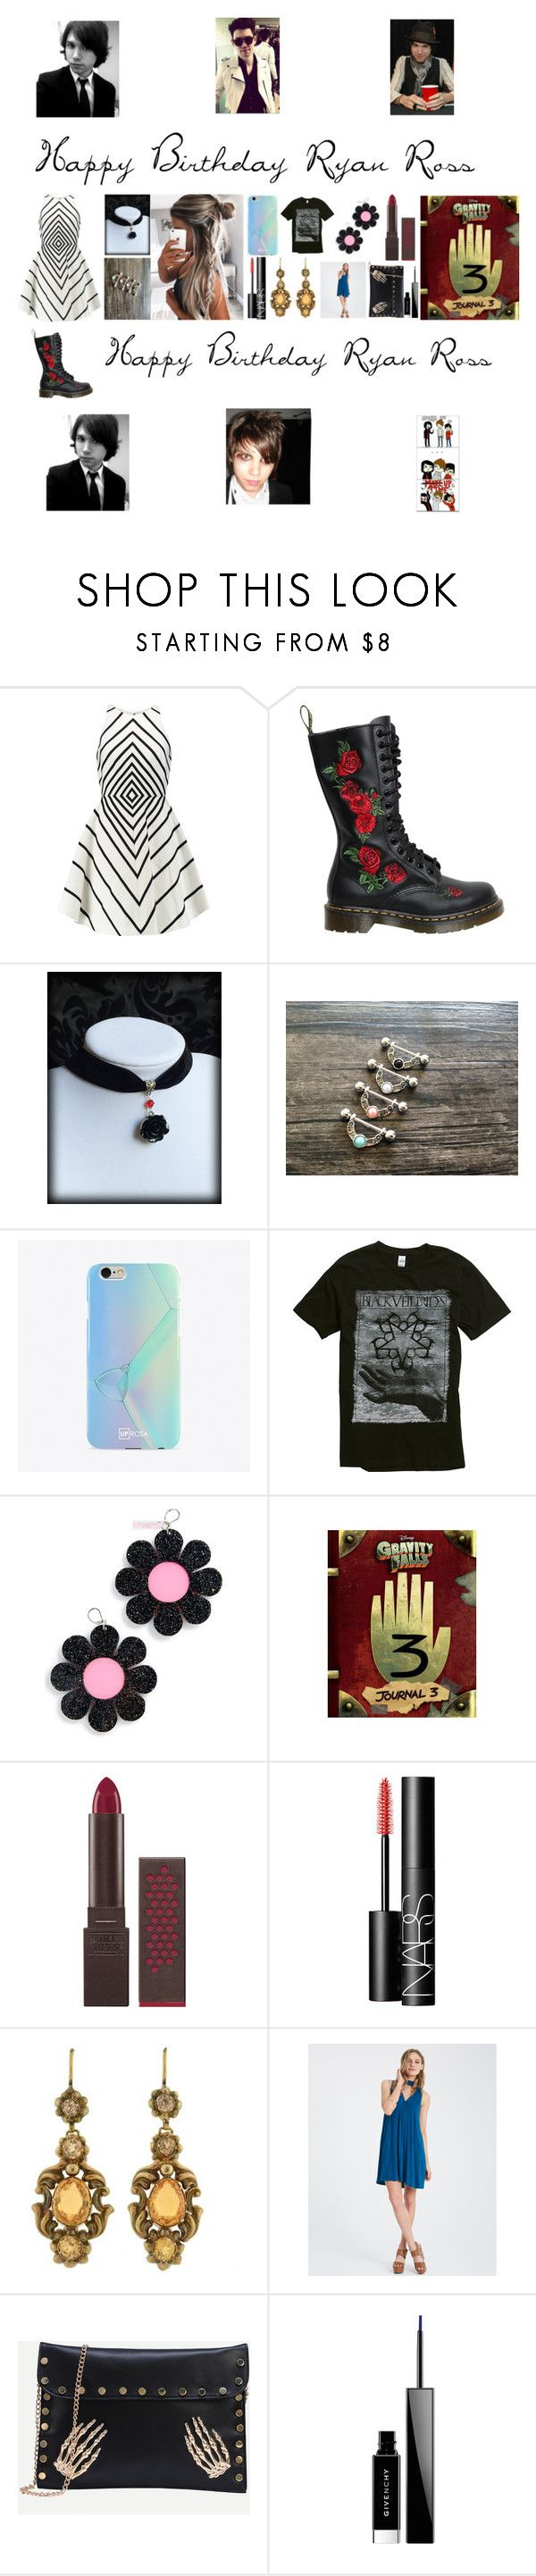 """""""Ryan Ross❤️"""" by cassieee-m ❤ liked on Polyvore featuring Halston Heritage, Dr. Martens, UPROSA, Marina Fini, Burt's Bees, NARS Cosmetics, Givenchy and Doppelganger"""